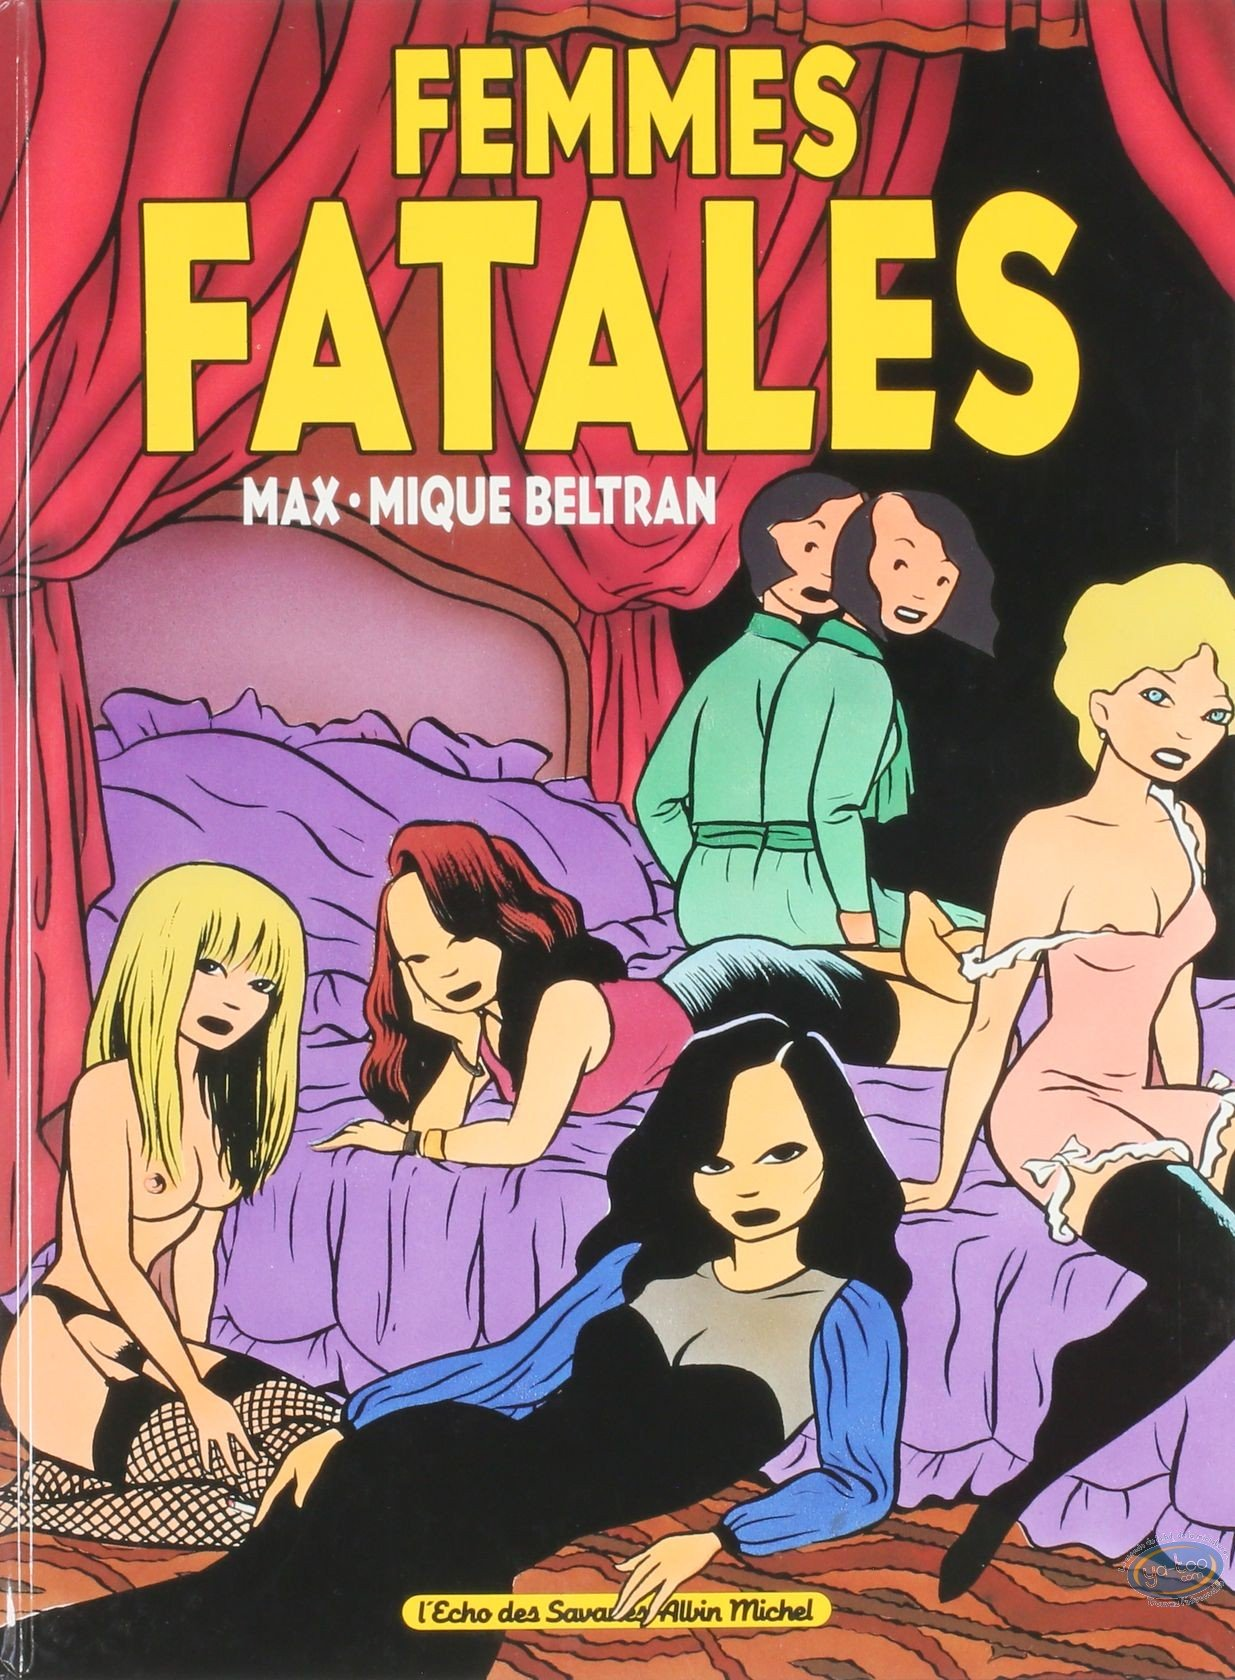 Adult Cartoon Comics adult european comic books, femmes fatales : femmes fatales